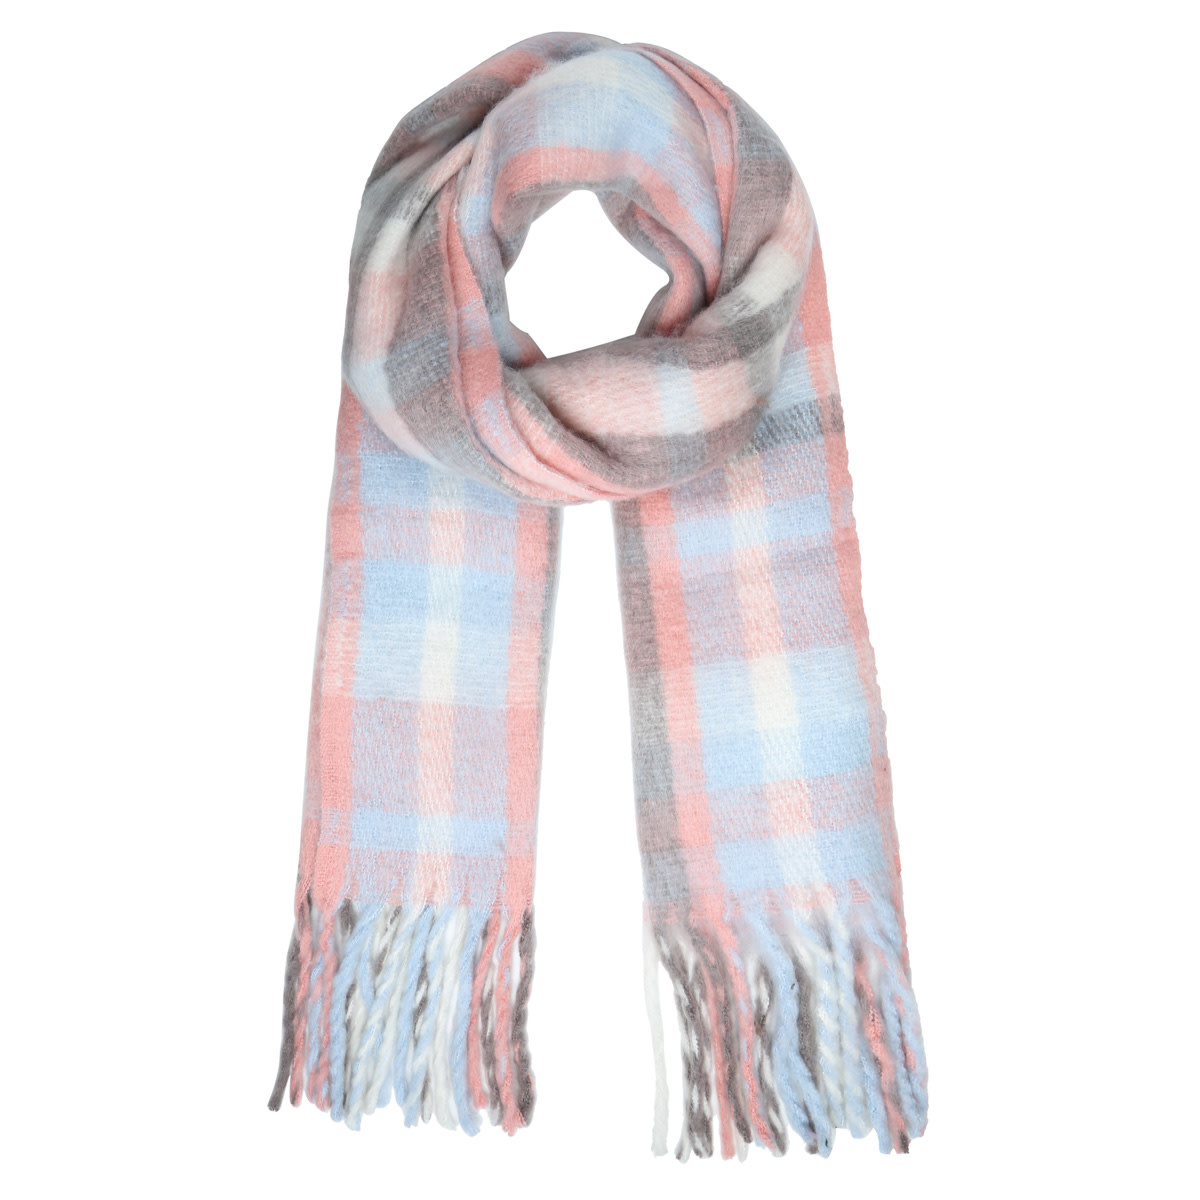 With love Scarf warm vibes - pale pink